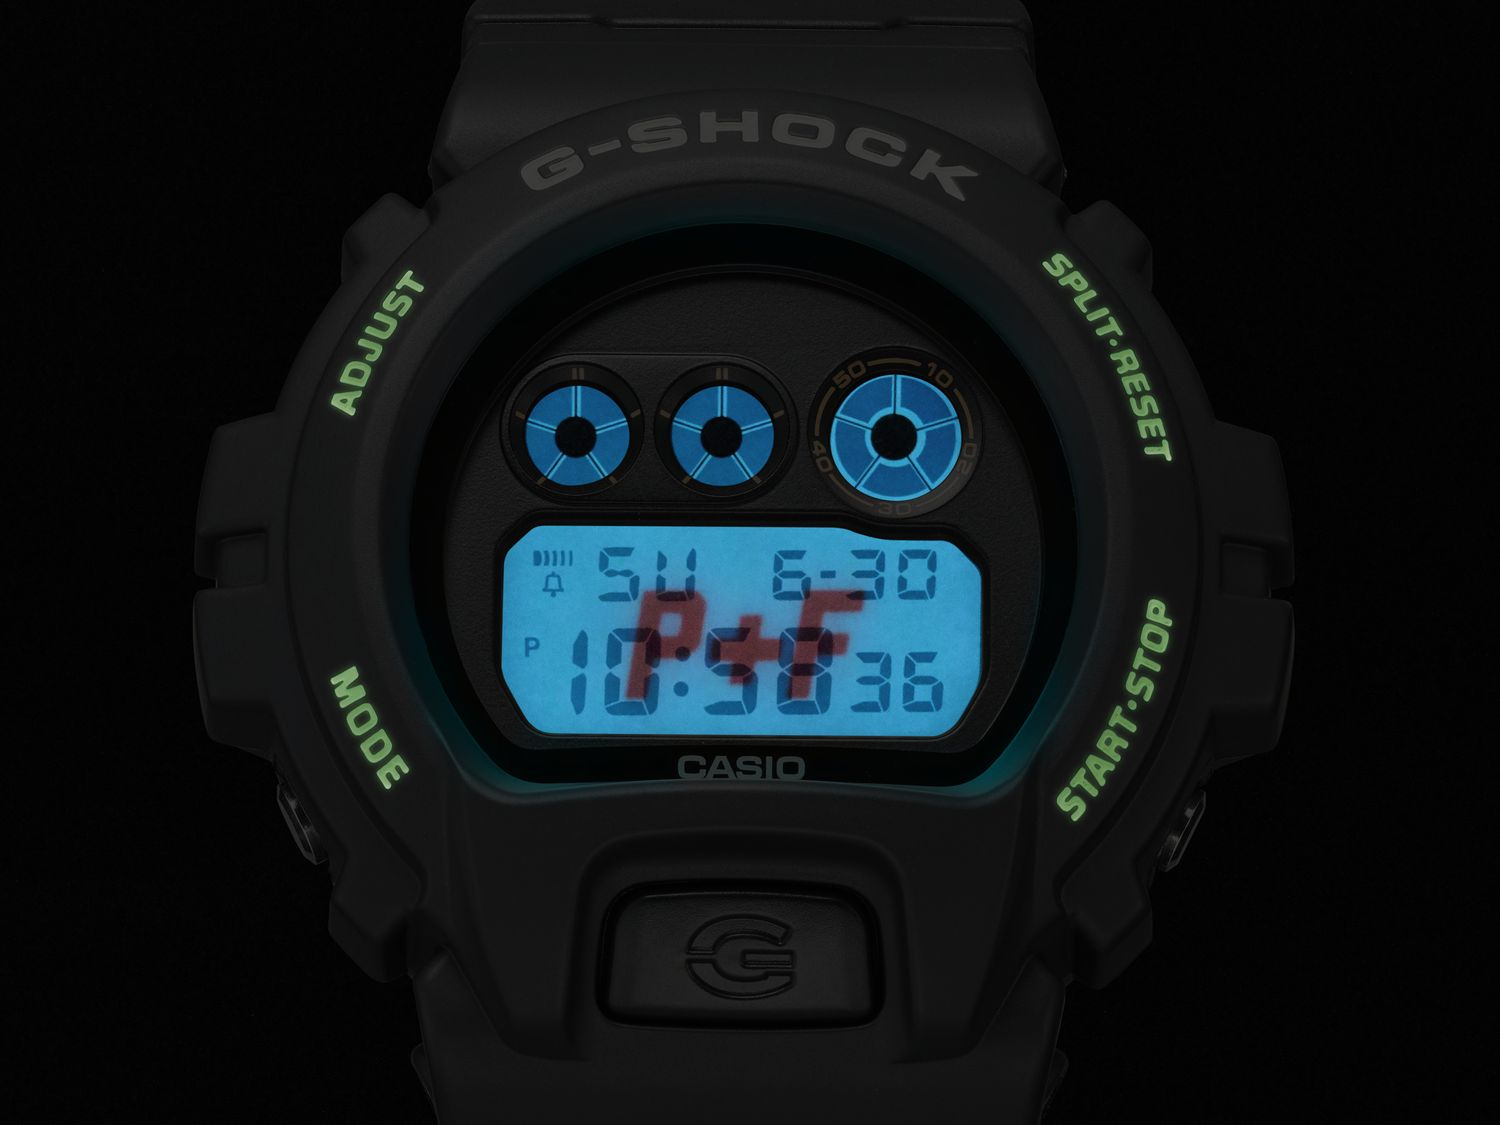 часы casio g-shock dw-9600 places faces